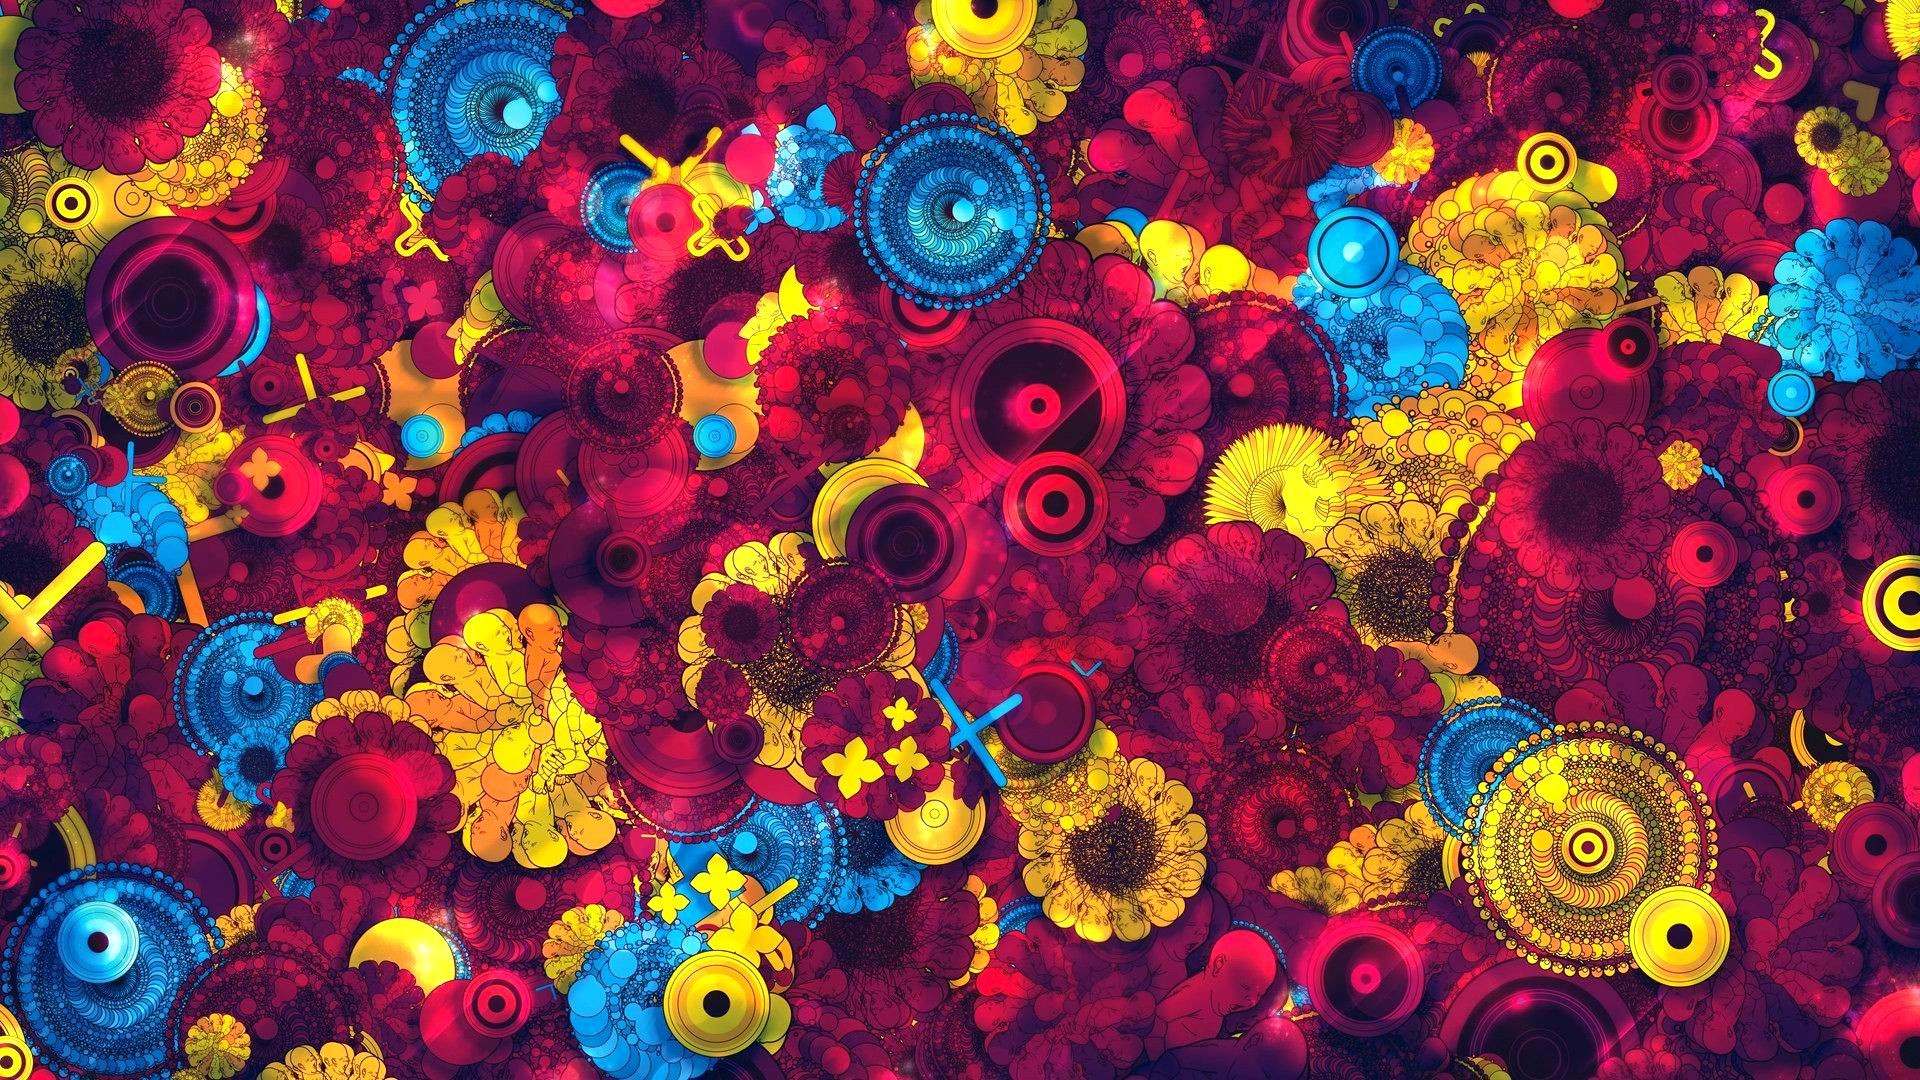 Amazing Wallpaper High Resolution Abstract - 855267-widescreen-high-definition-abstract-wallpapers-1920x1080-for-full-hd  You Should Have_648532.jpg